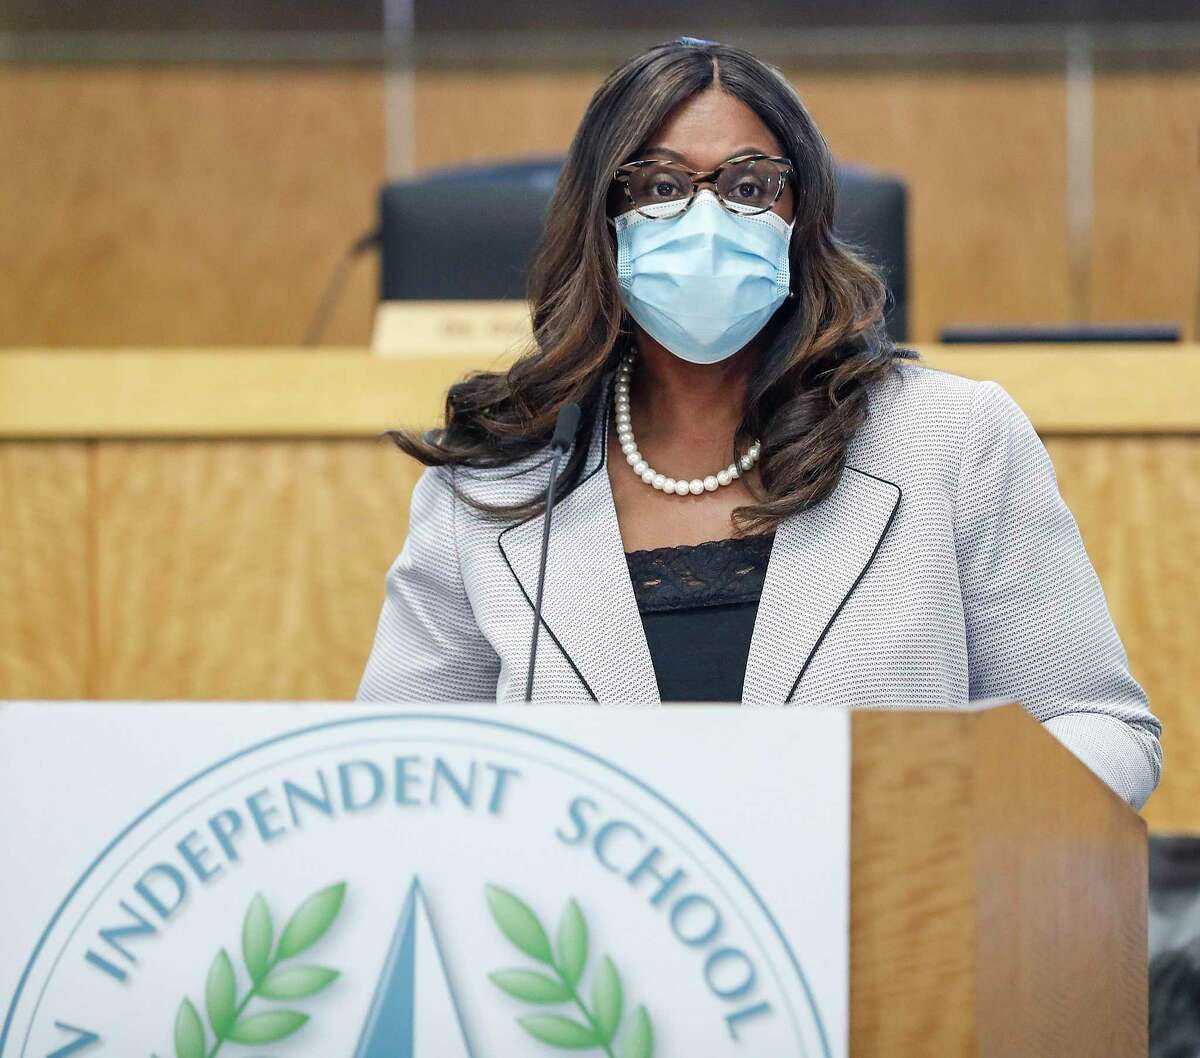 Houston ISD Interim Superintendent Grenita Lathan, pictured on March 8, said Wednesday that the district hopes to offer online-only classes to start the 2021-22 school year. Her comments came during the district's annual State of the Schools event, which was held virtually.